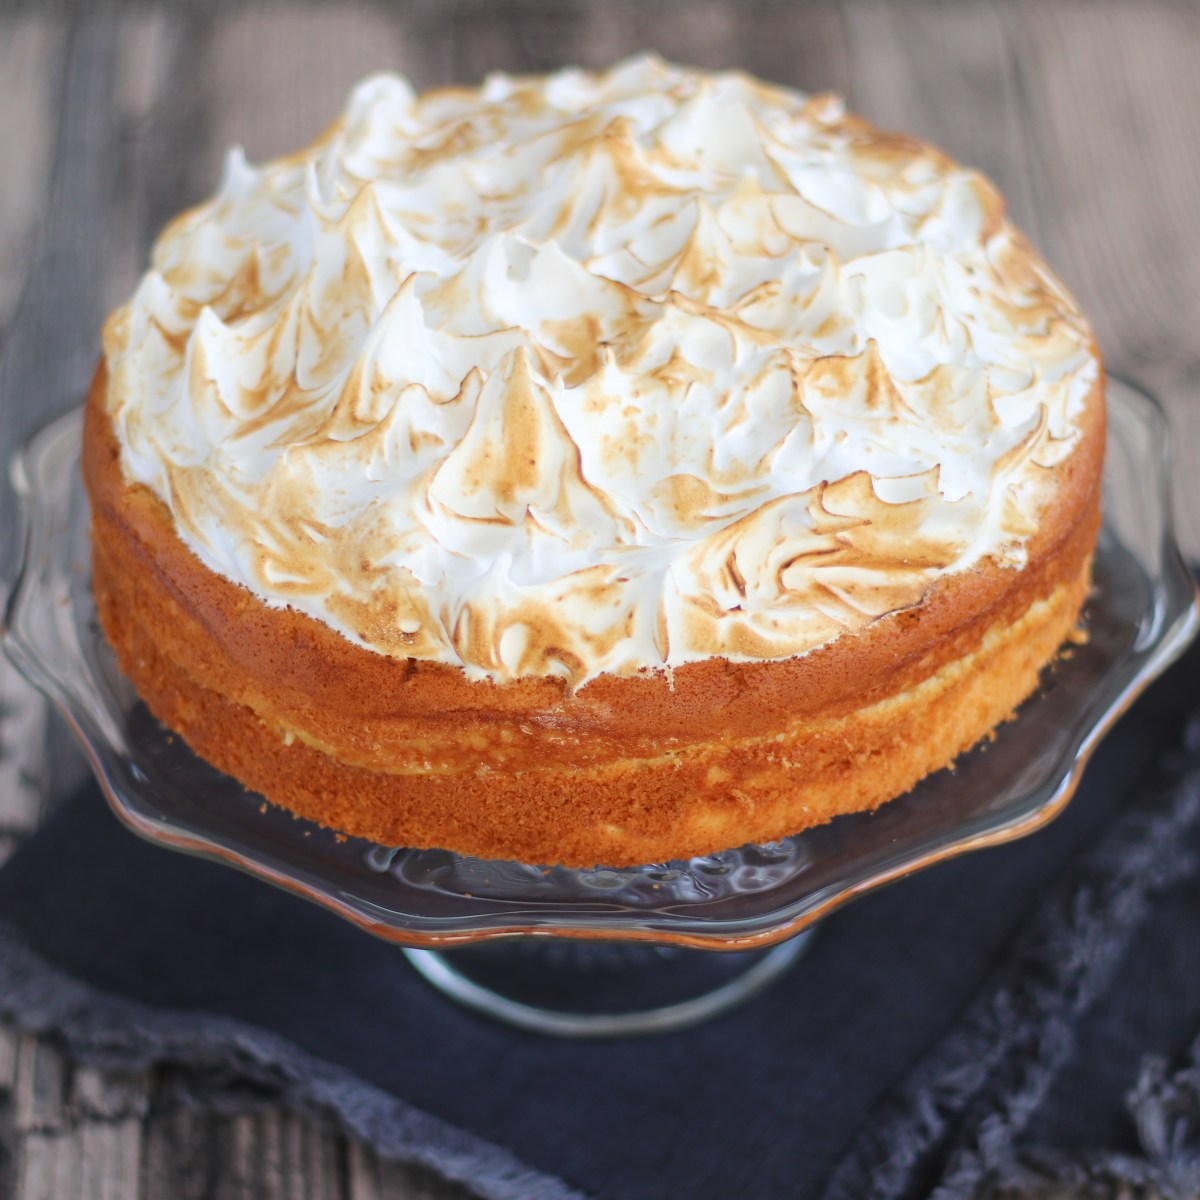 Luchtige lemon meringue cake